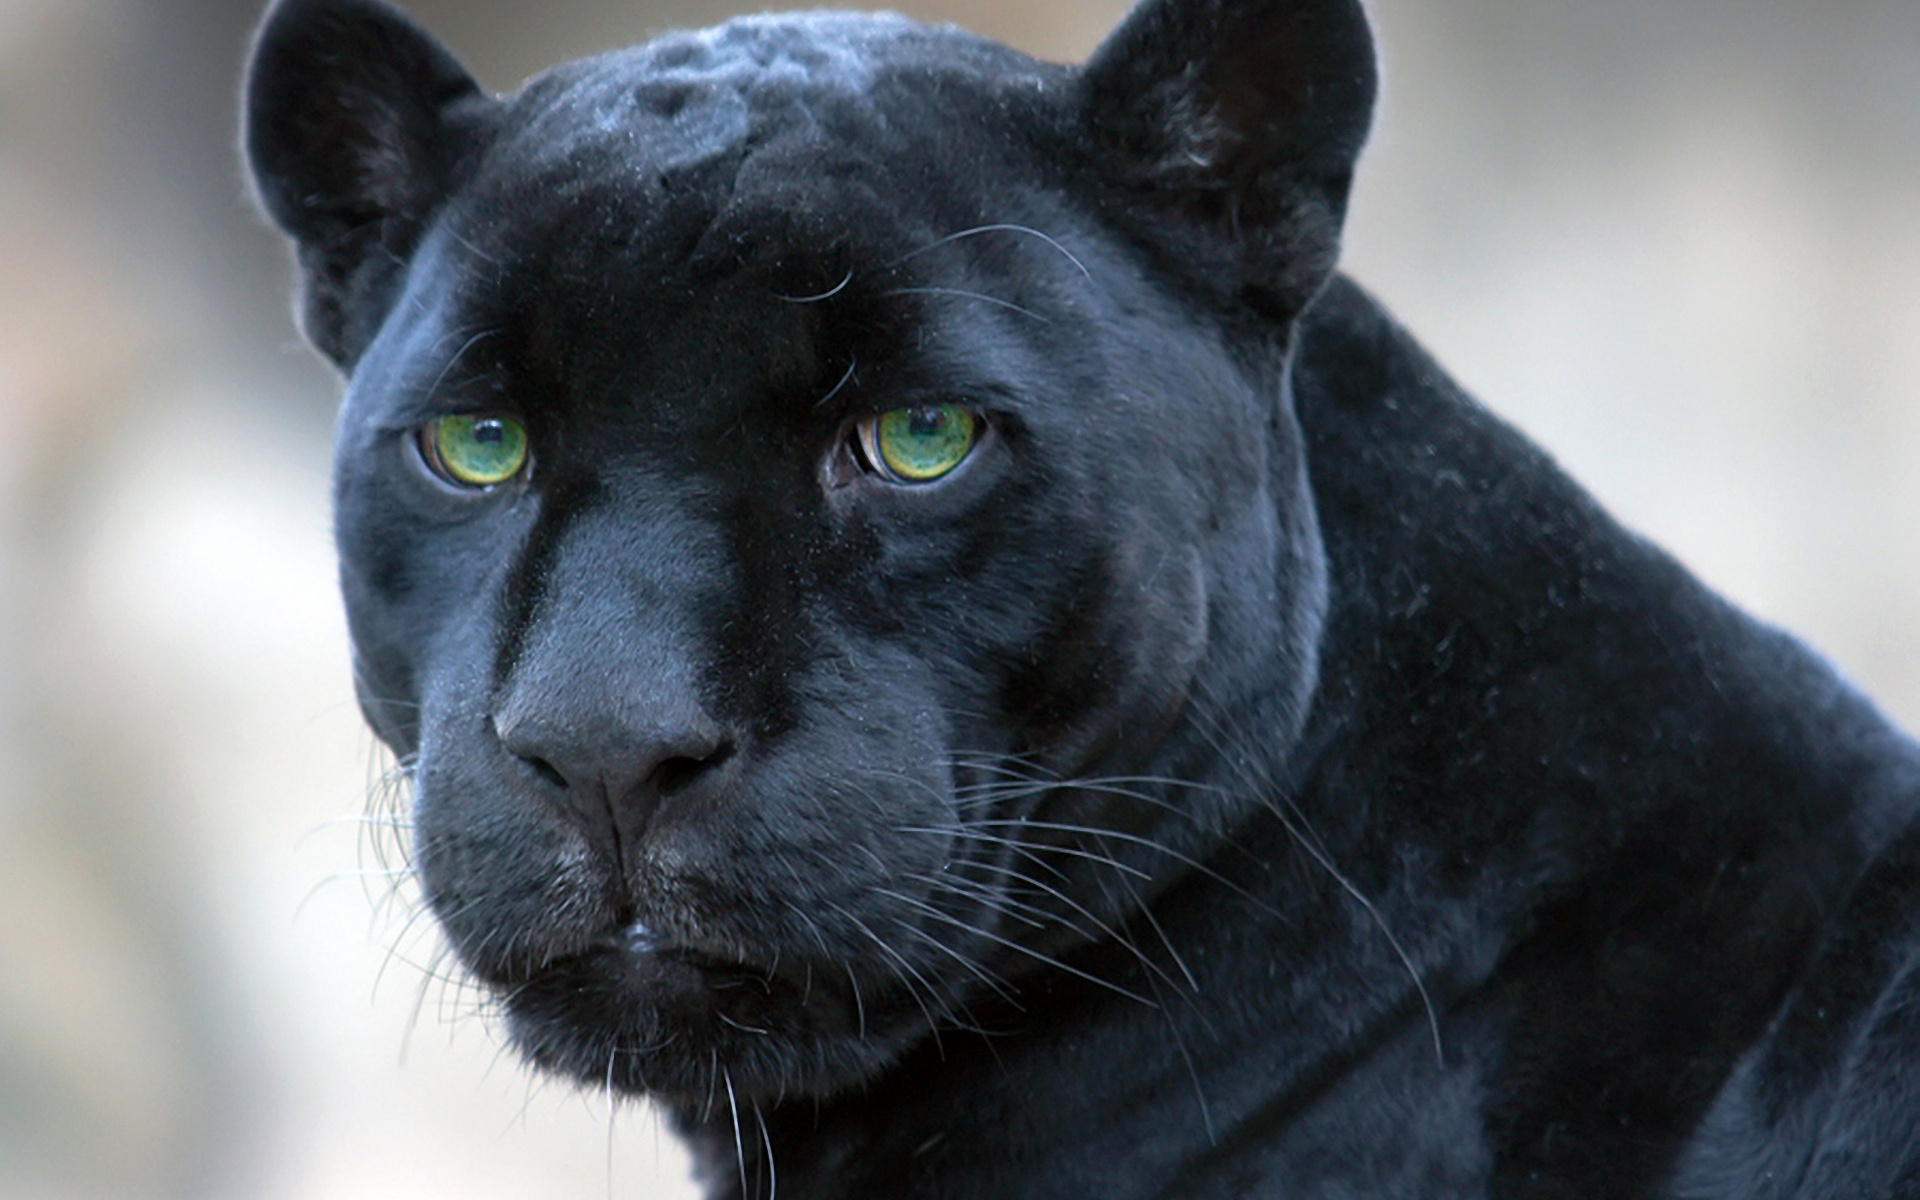 Panther Face Look 285.38 Kb